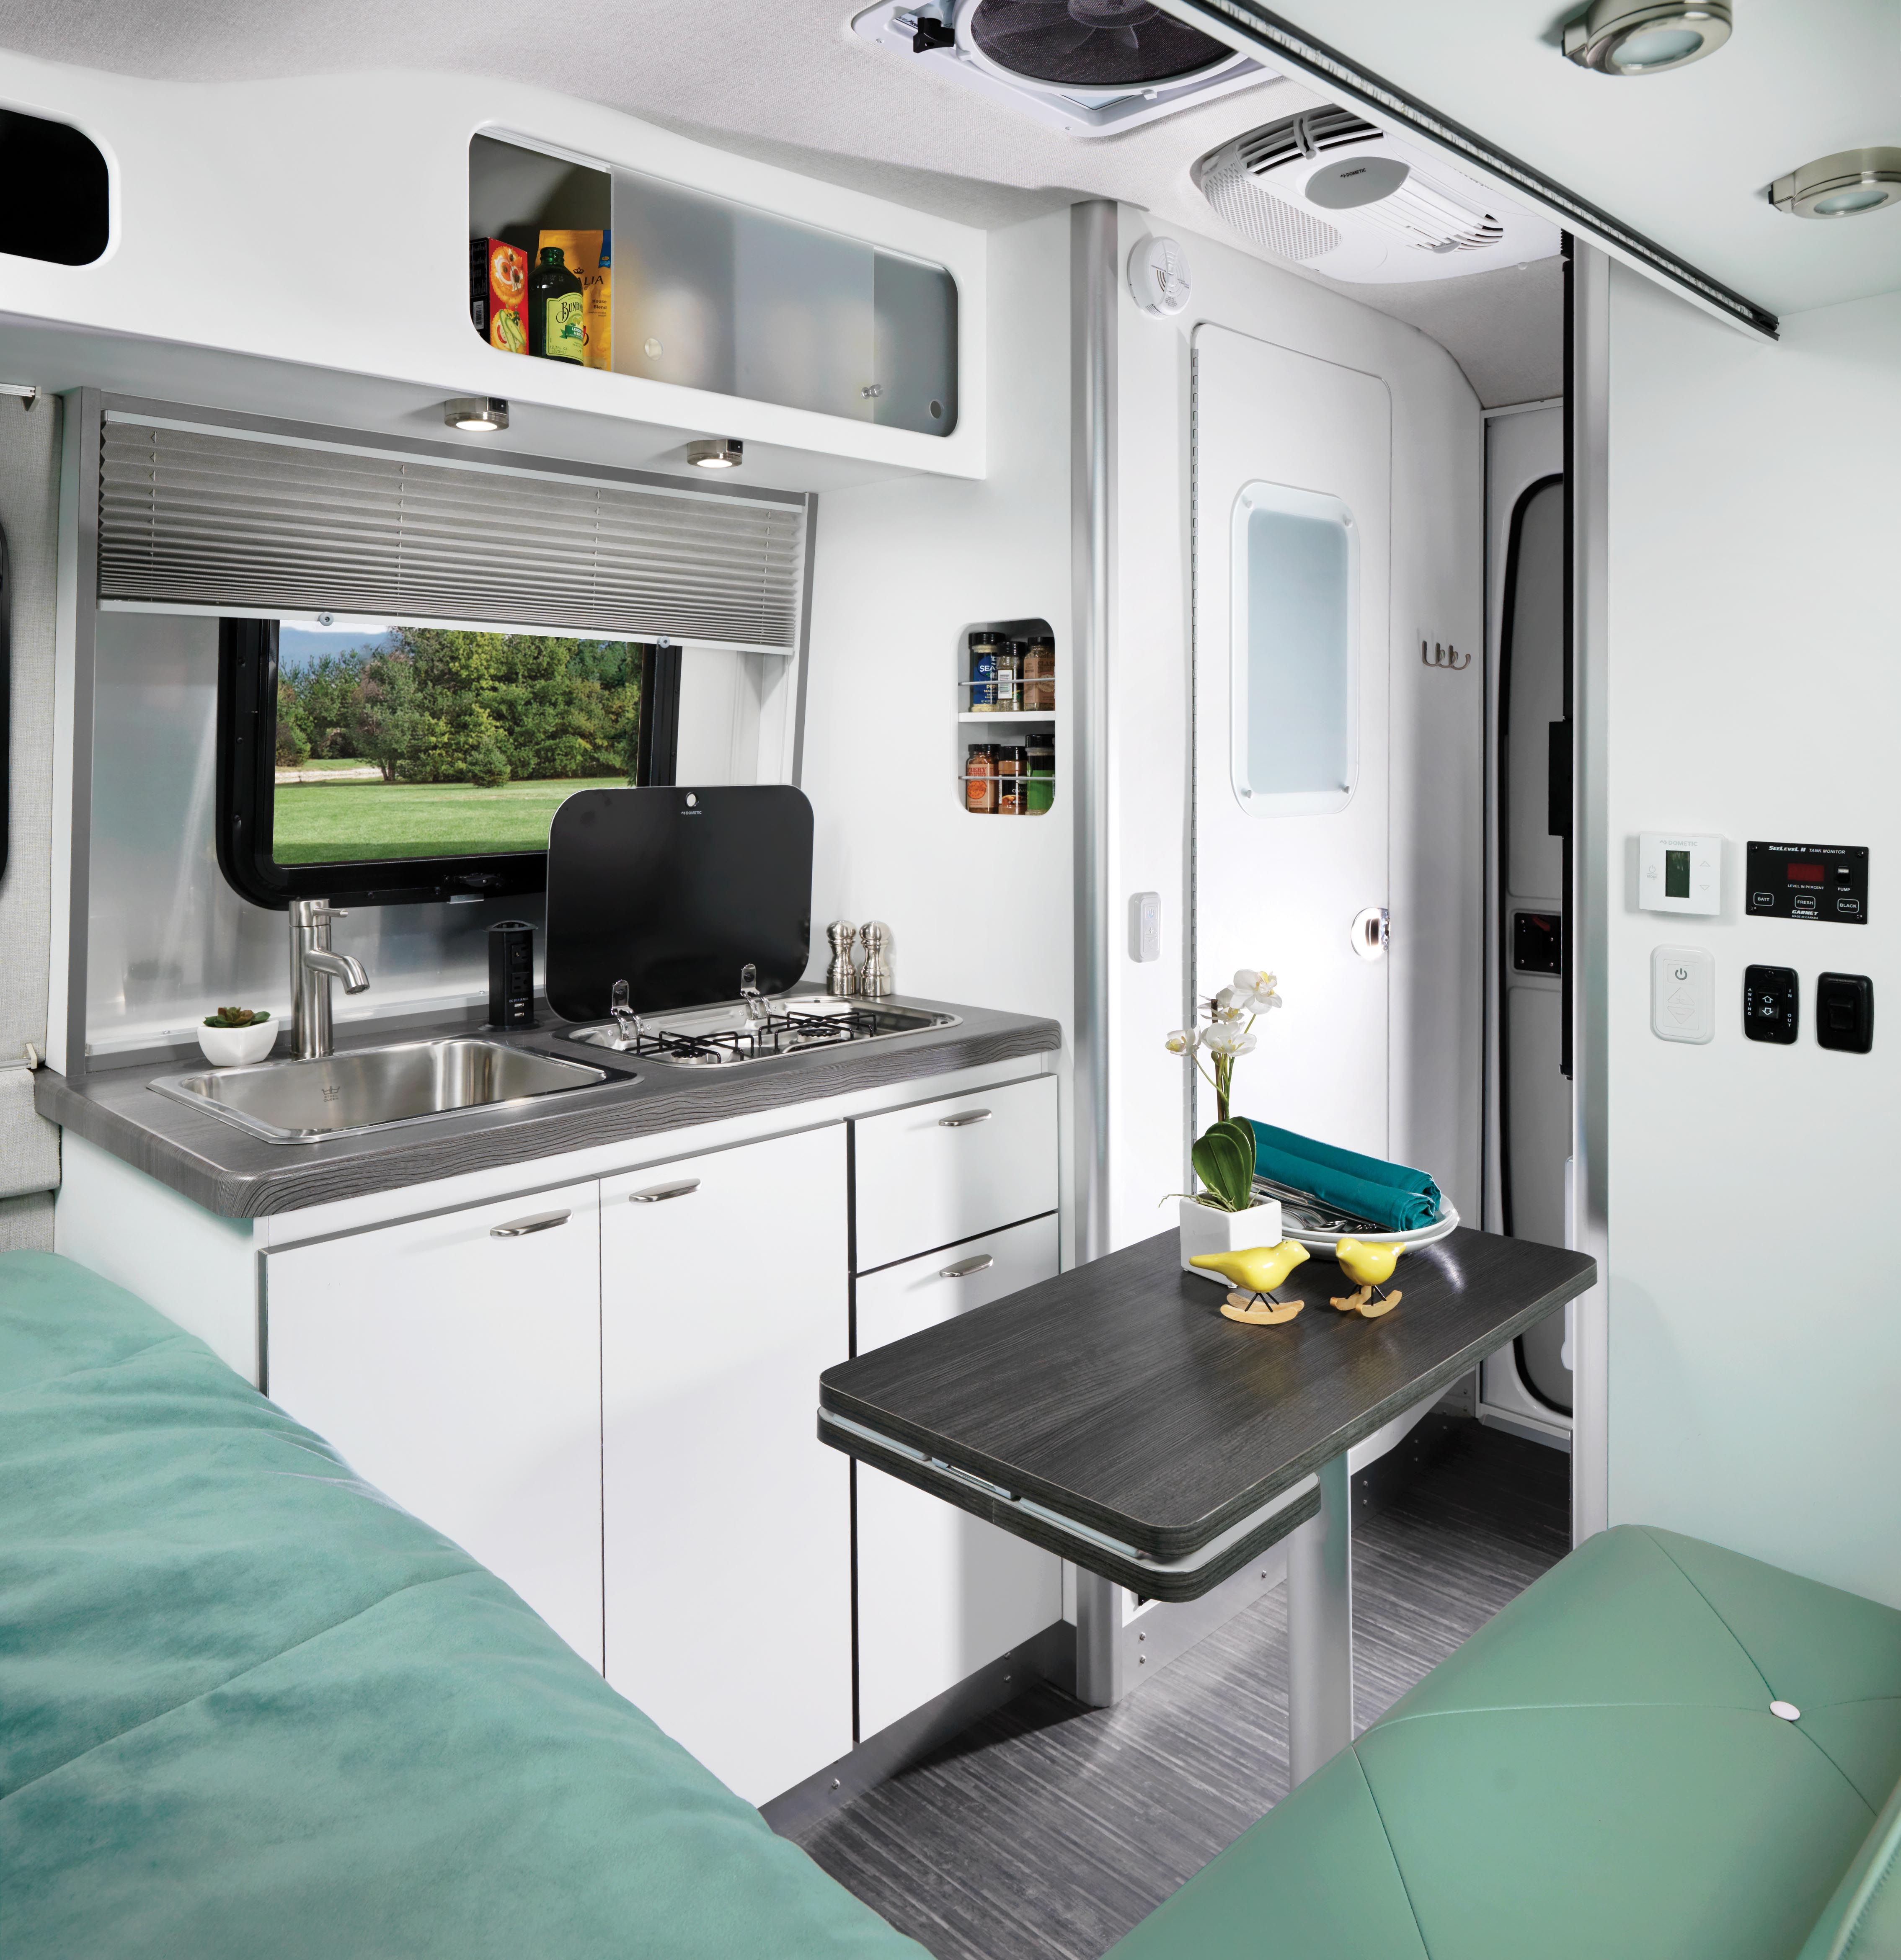 Airstream's new trailer, Nest, offers compact luxury for $45K